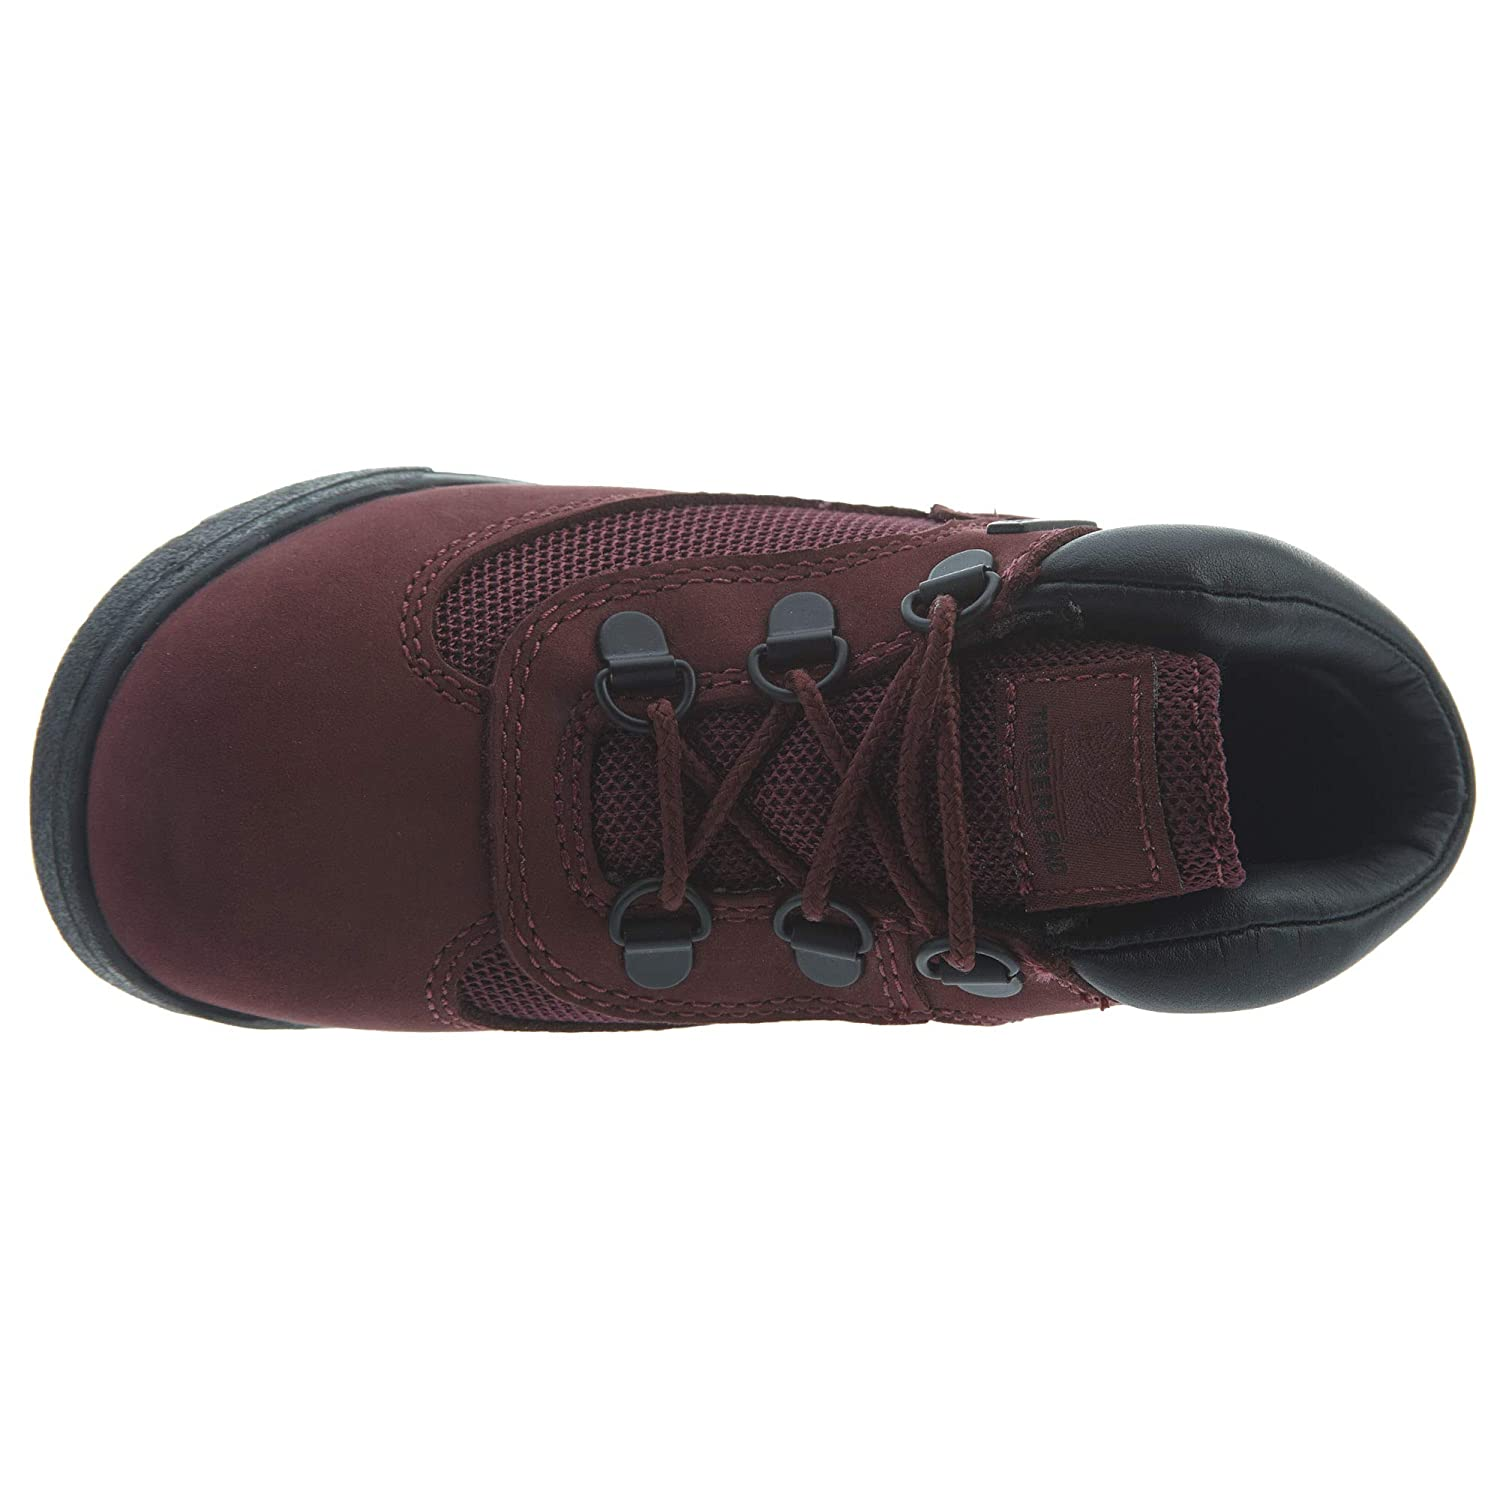 8 C US Timberland Field Boots Toddlers Style TB0A1ATT-Burgundy Size